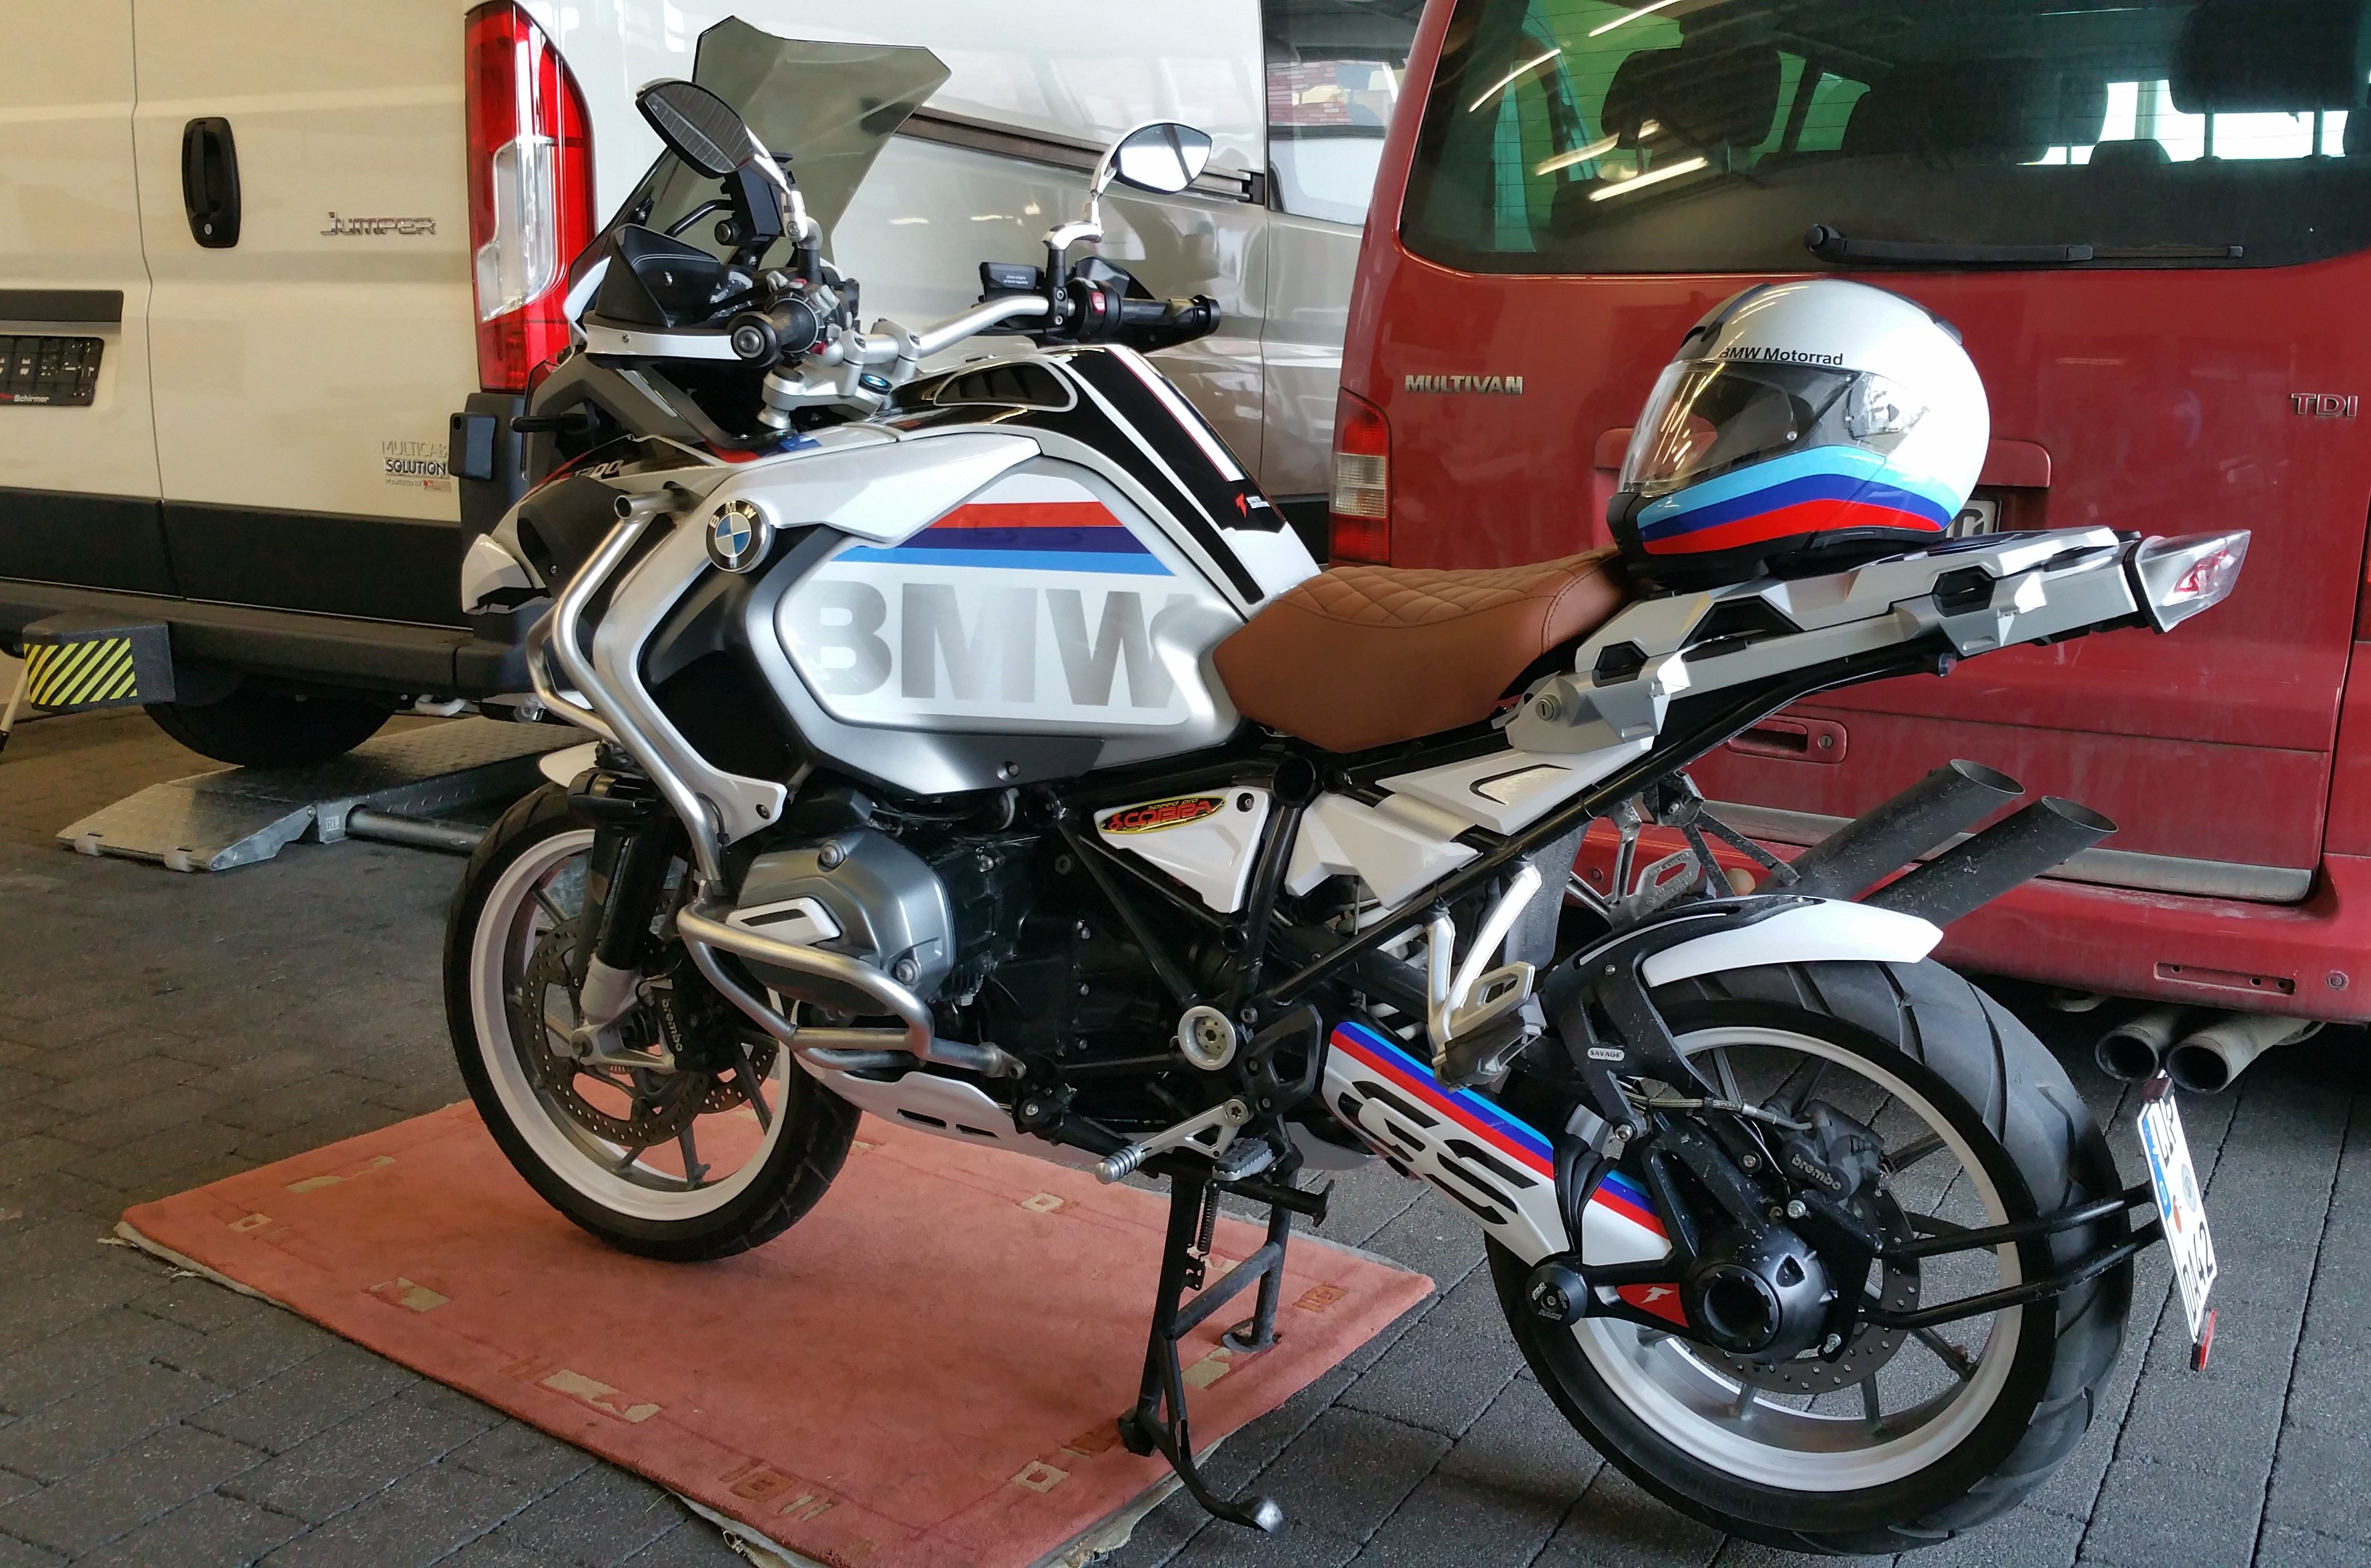 r1200gs lc adventure tuning bmw motorcycles. Black Bedroom Furniture Sets. Home Design Ideas